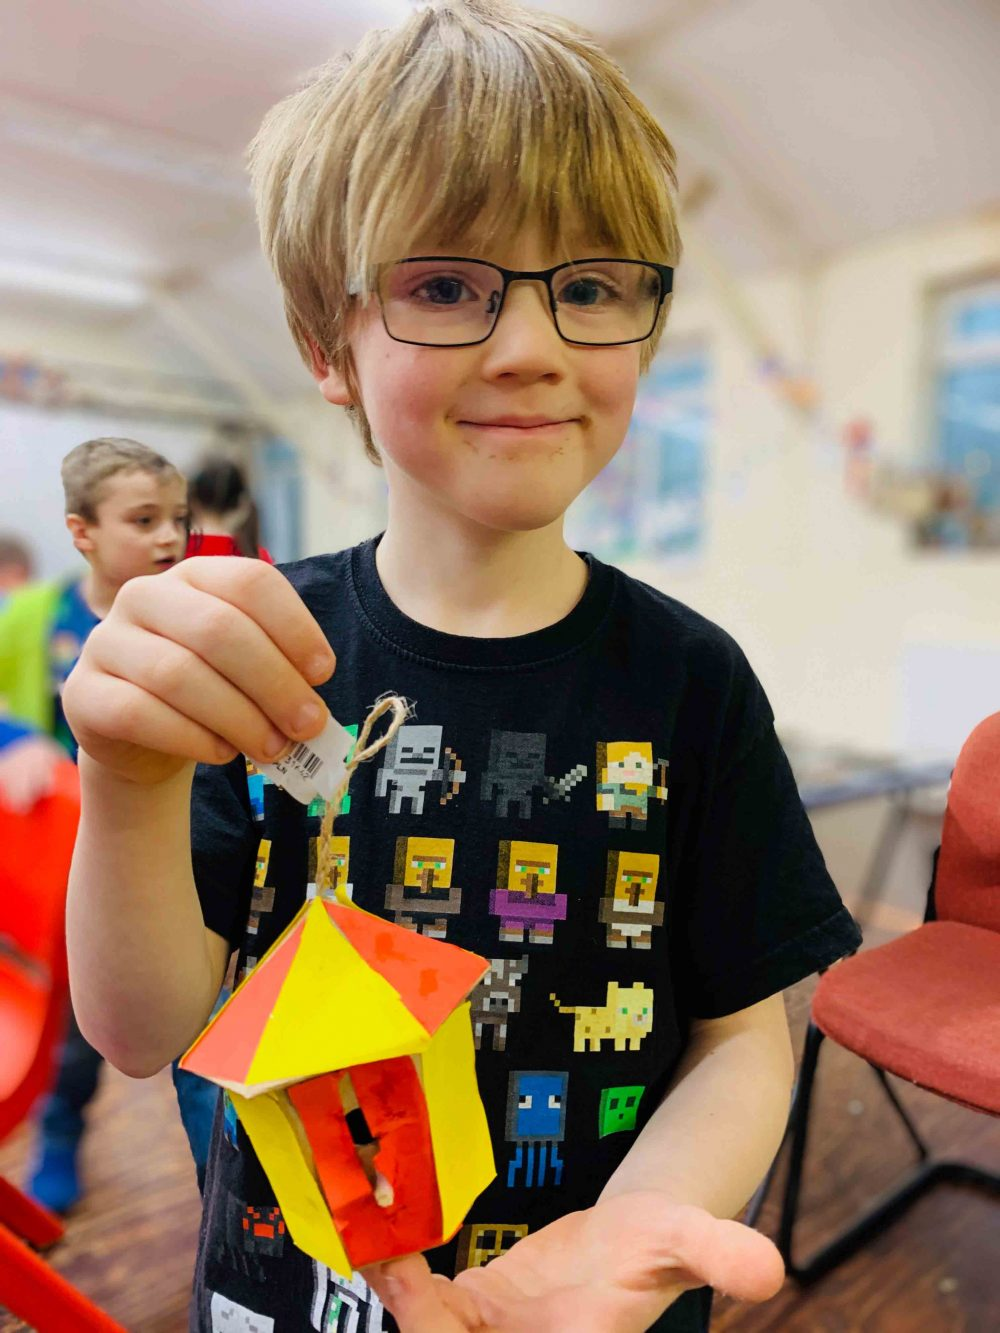 https://indigoartsandcrafts.co.uk/wp-content/uploads/2020/07/February-Half-Term-Holiday-Club40-e1594328447988.jpg